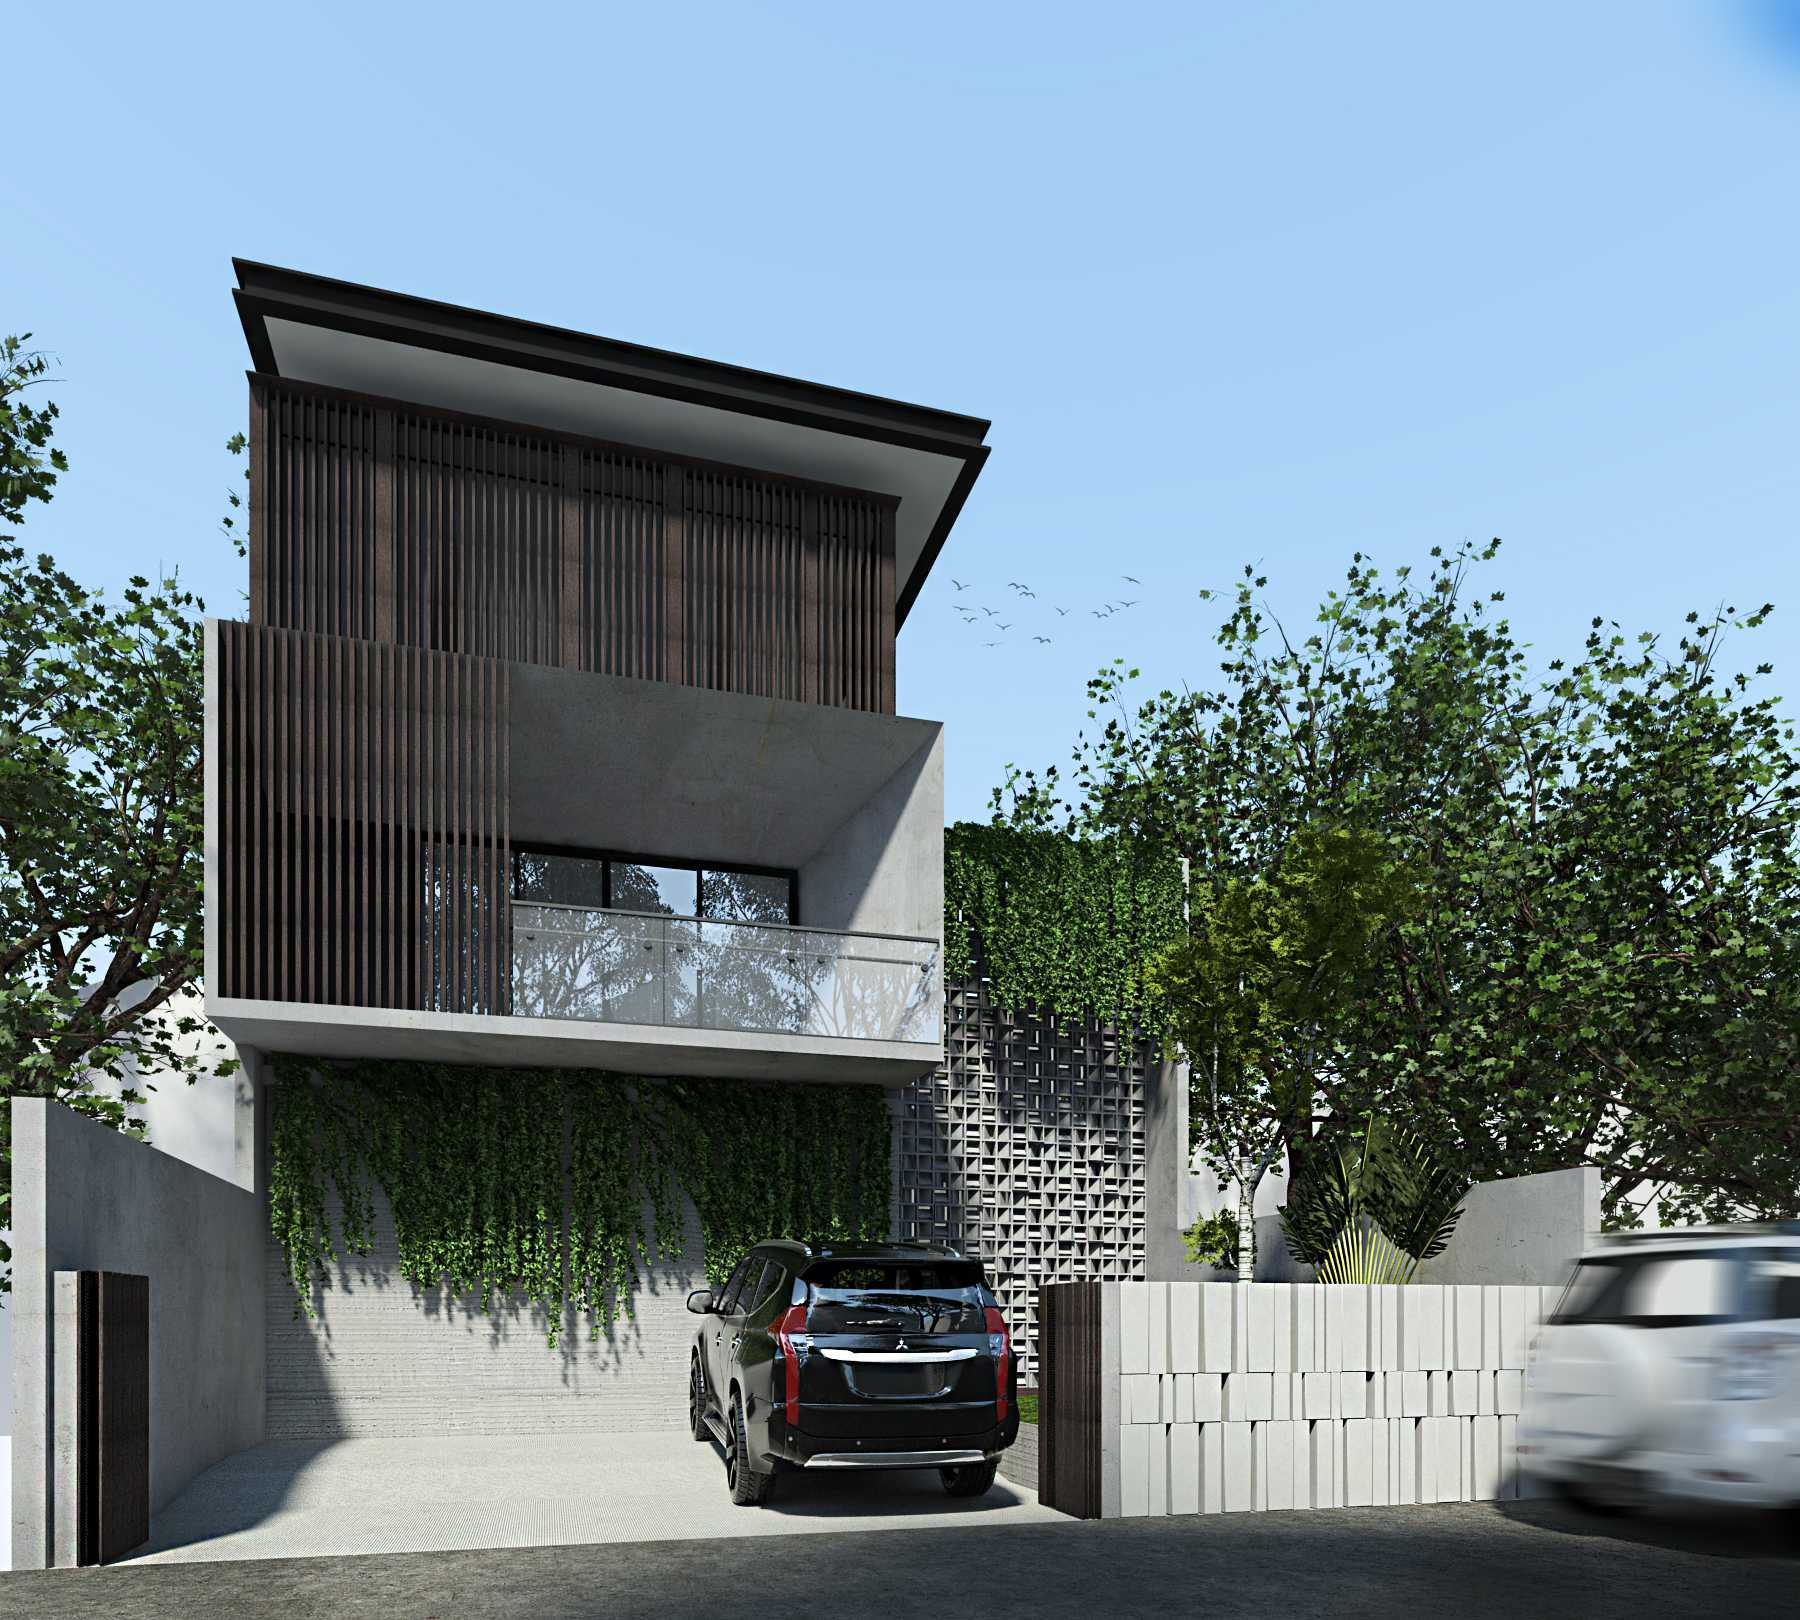 Sutastudio Pjd House Bali, Indonesia Bali, Indonesia Sutastudio-Pjd-House   64539